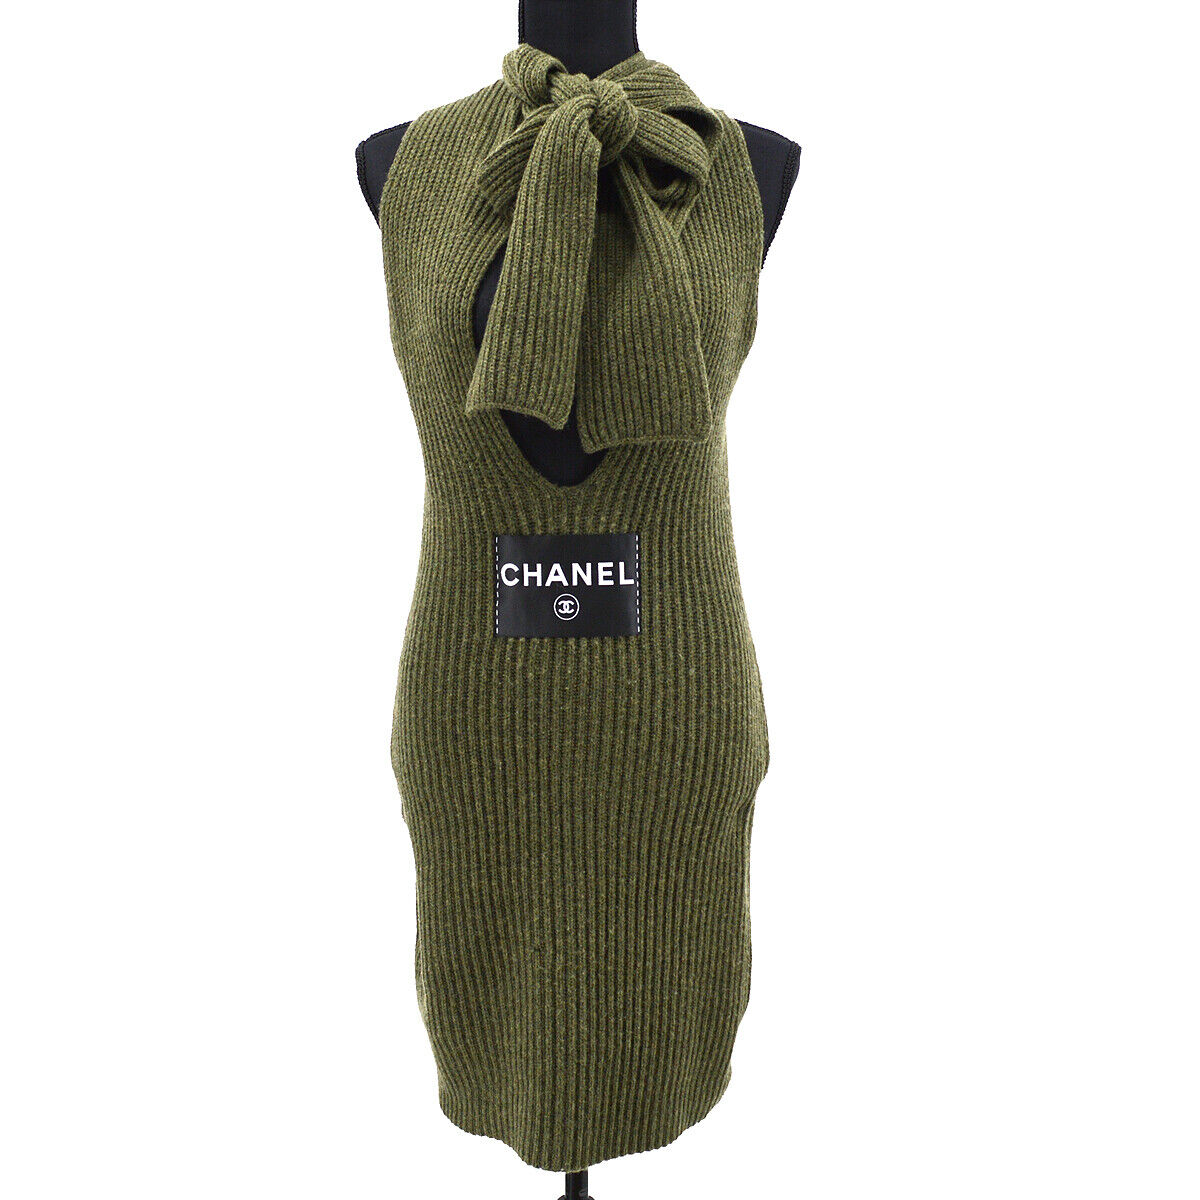 Chanel 08c #34 cc logos robe sans manches one piece jupe kaki 37570